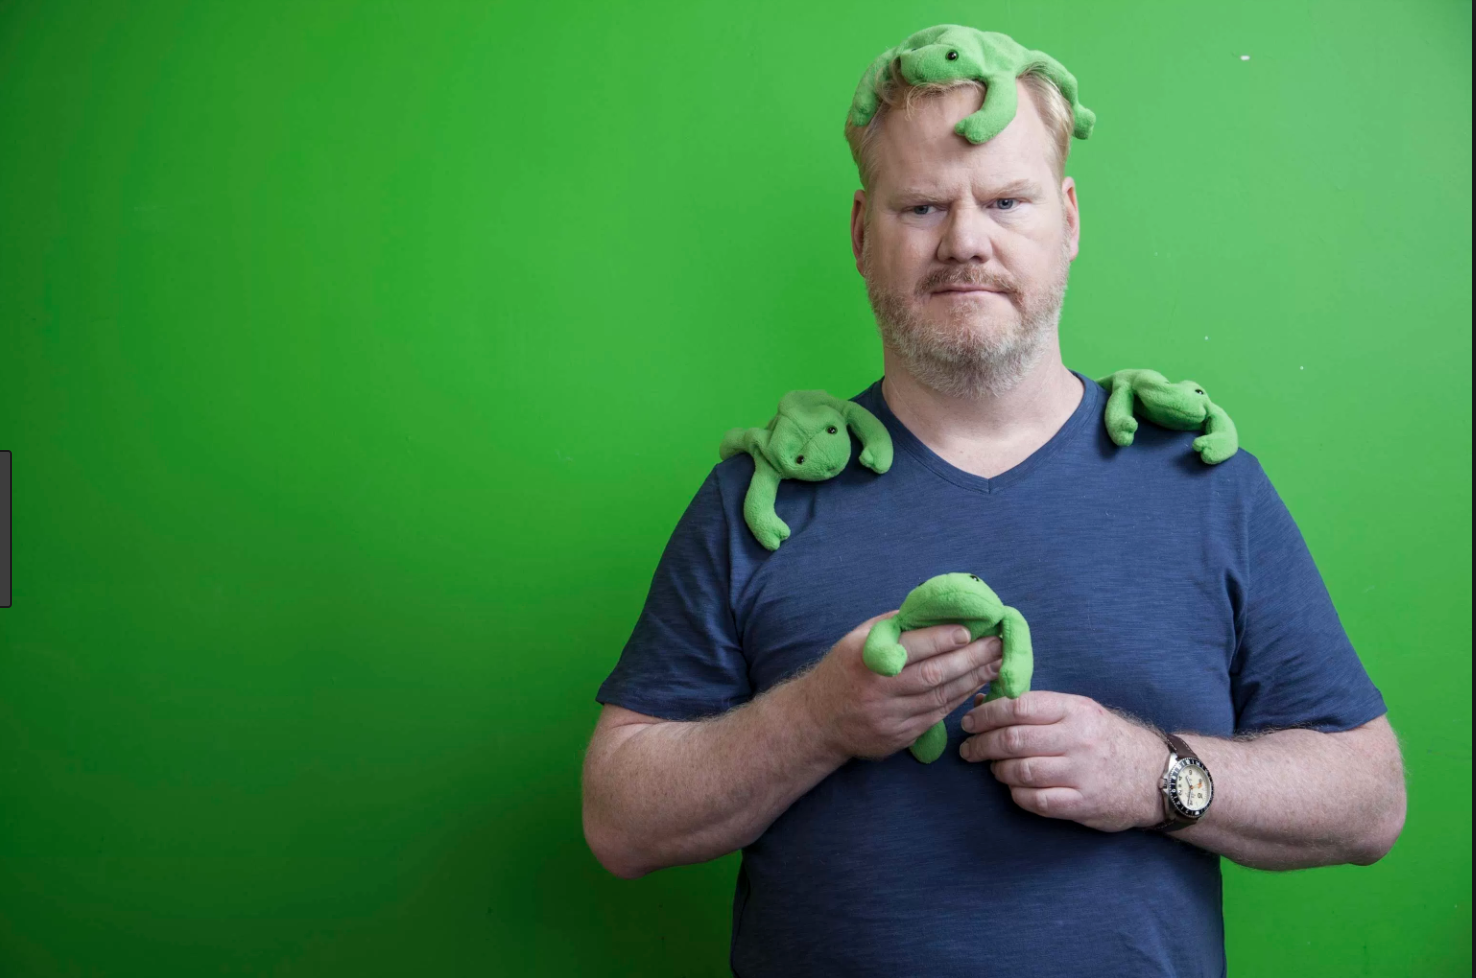 Hire Jim Gaffigan for Events